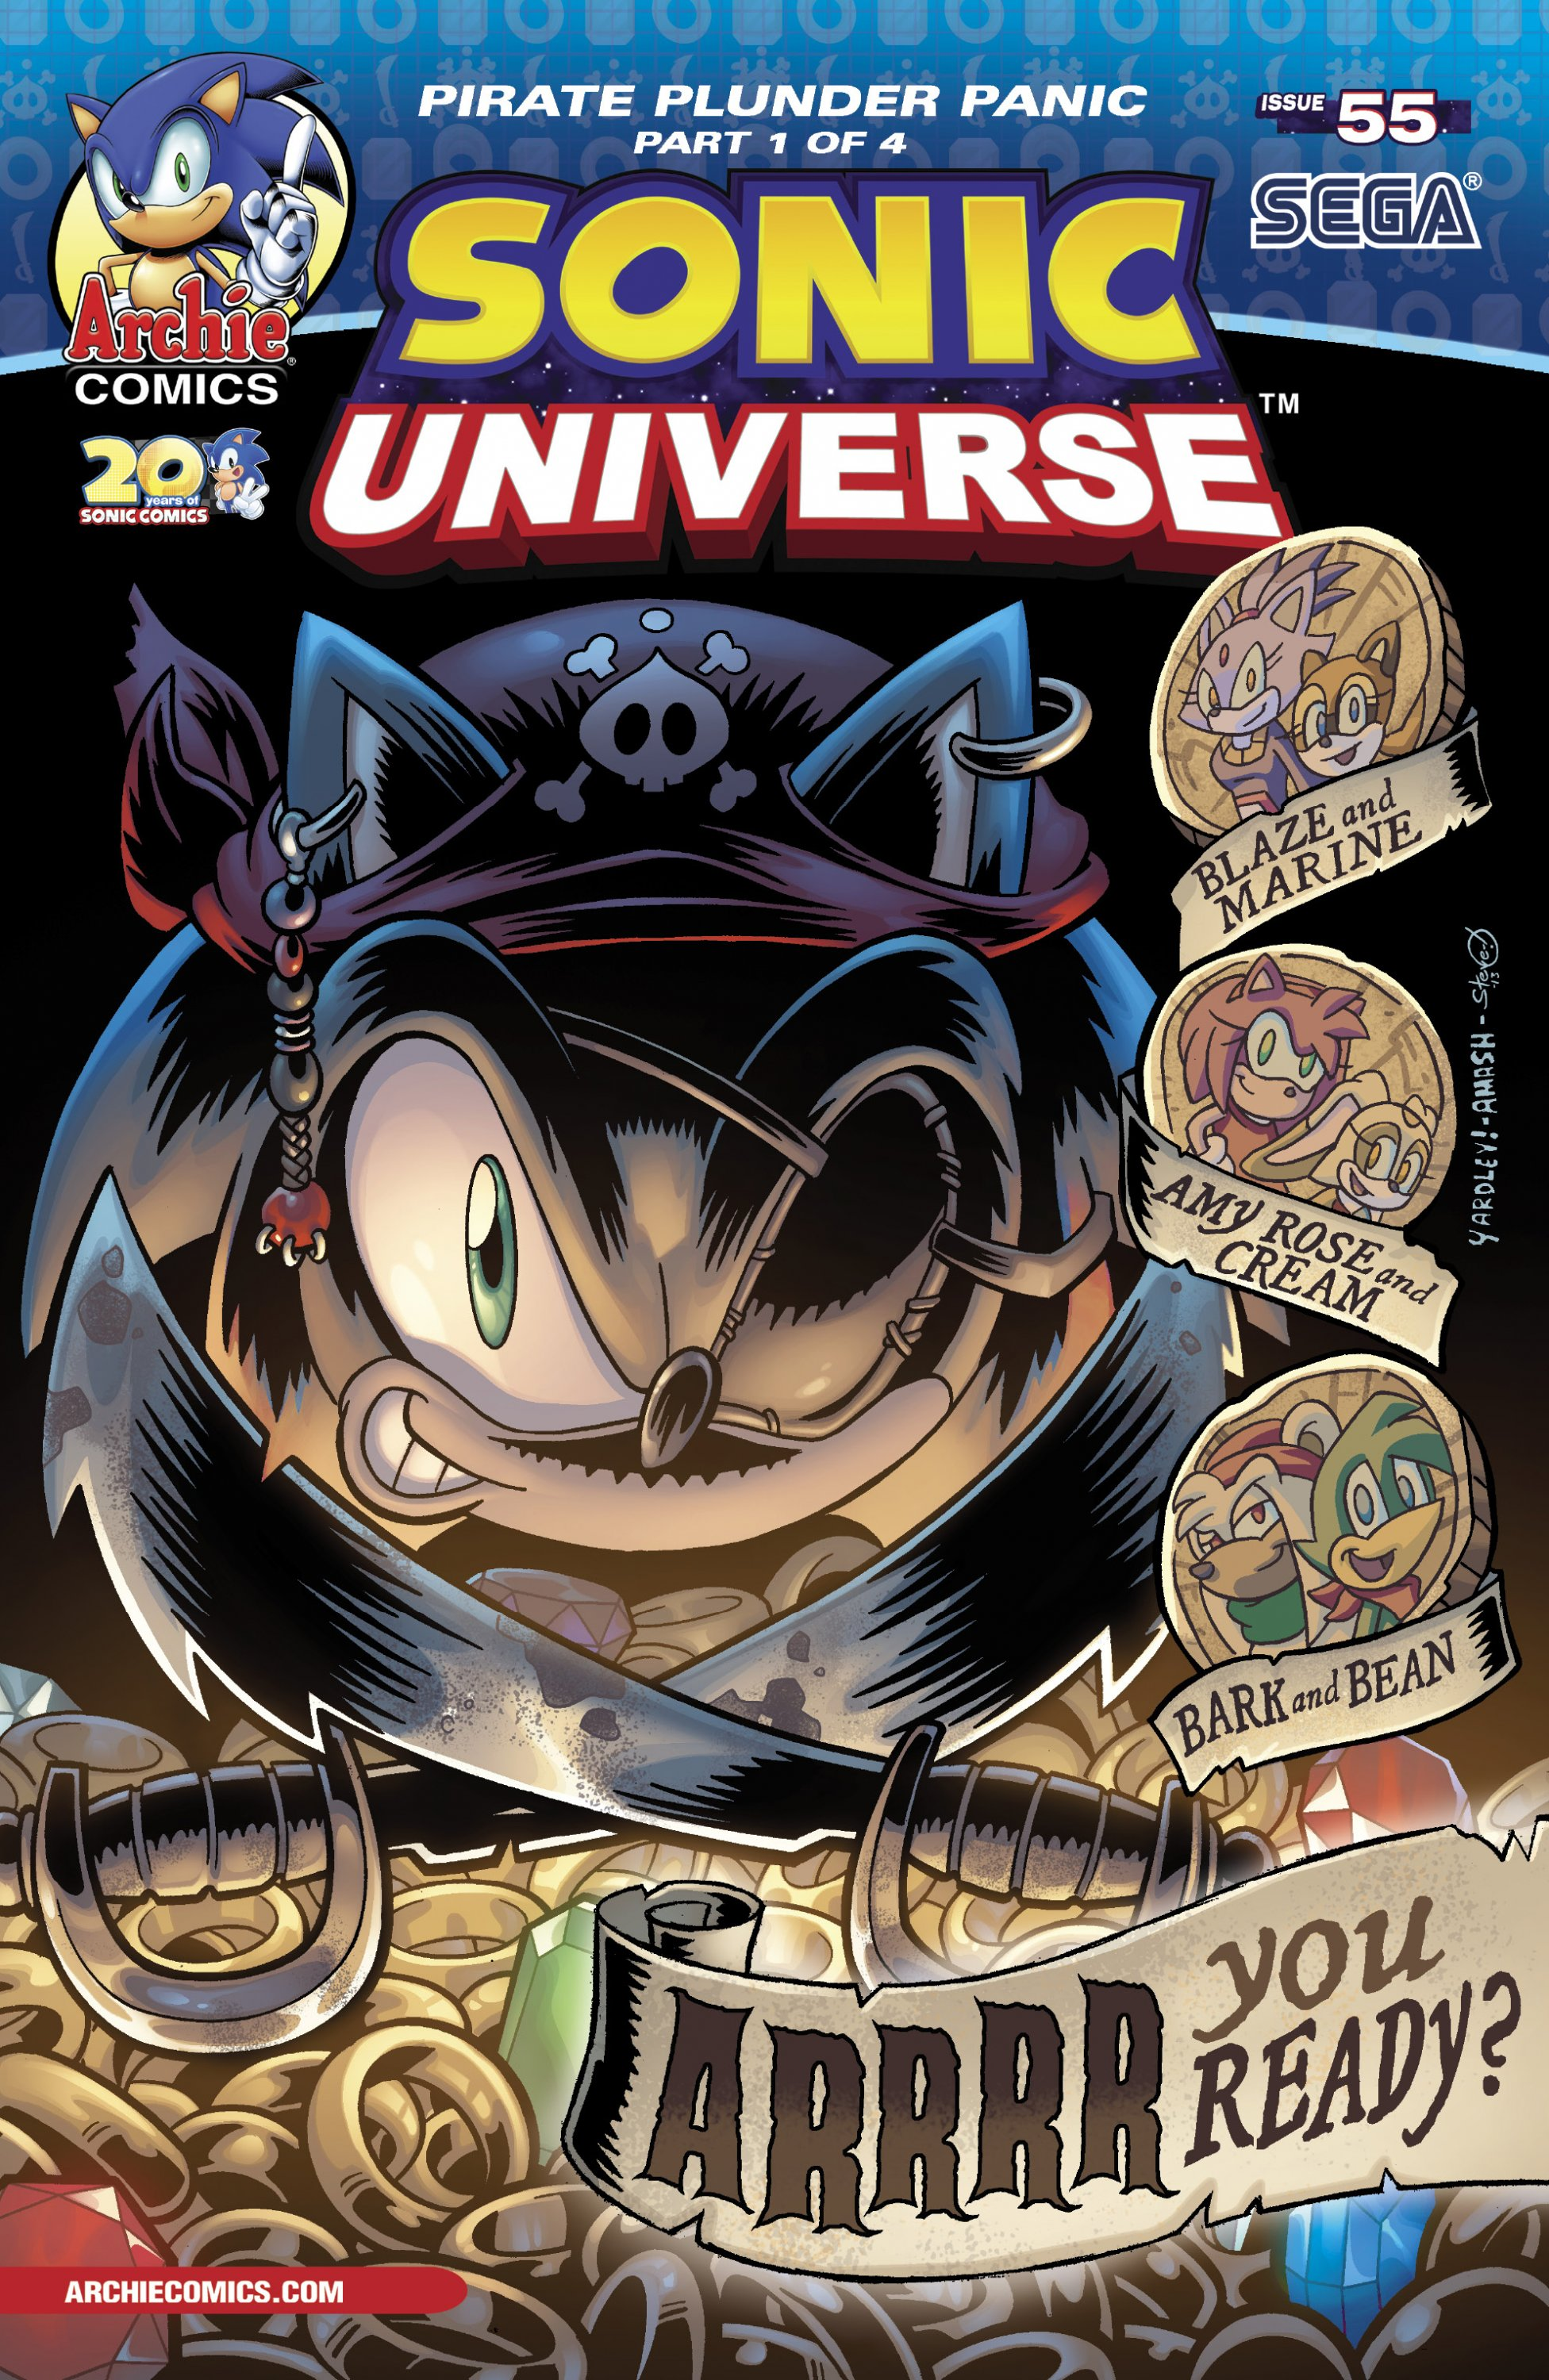 Sonic Universe 055 (October 2013)